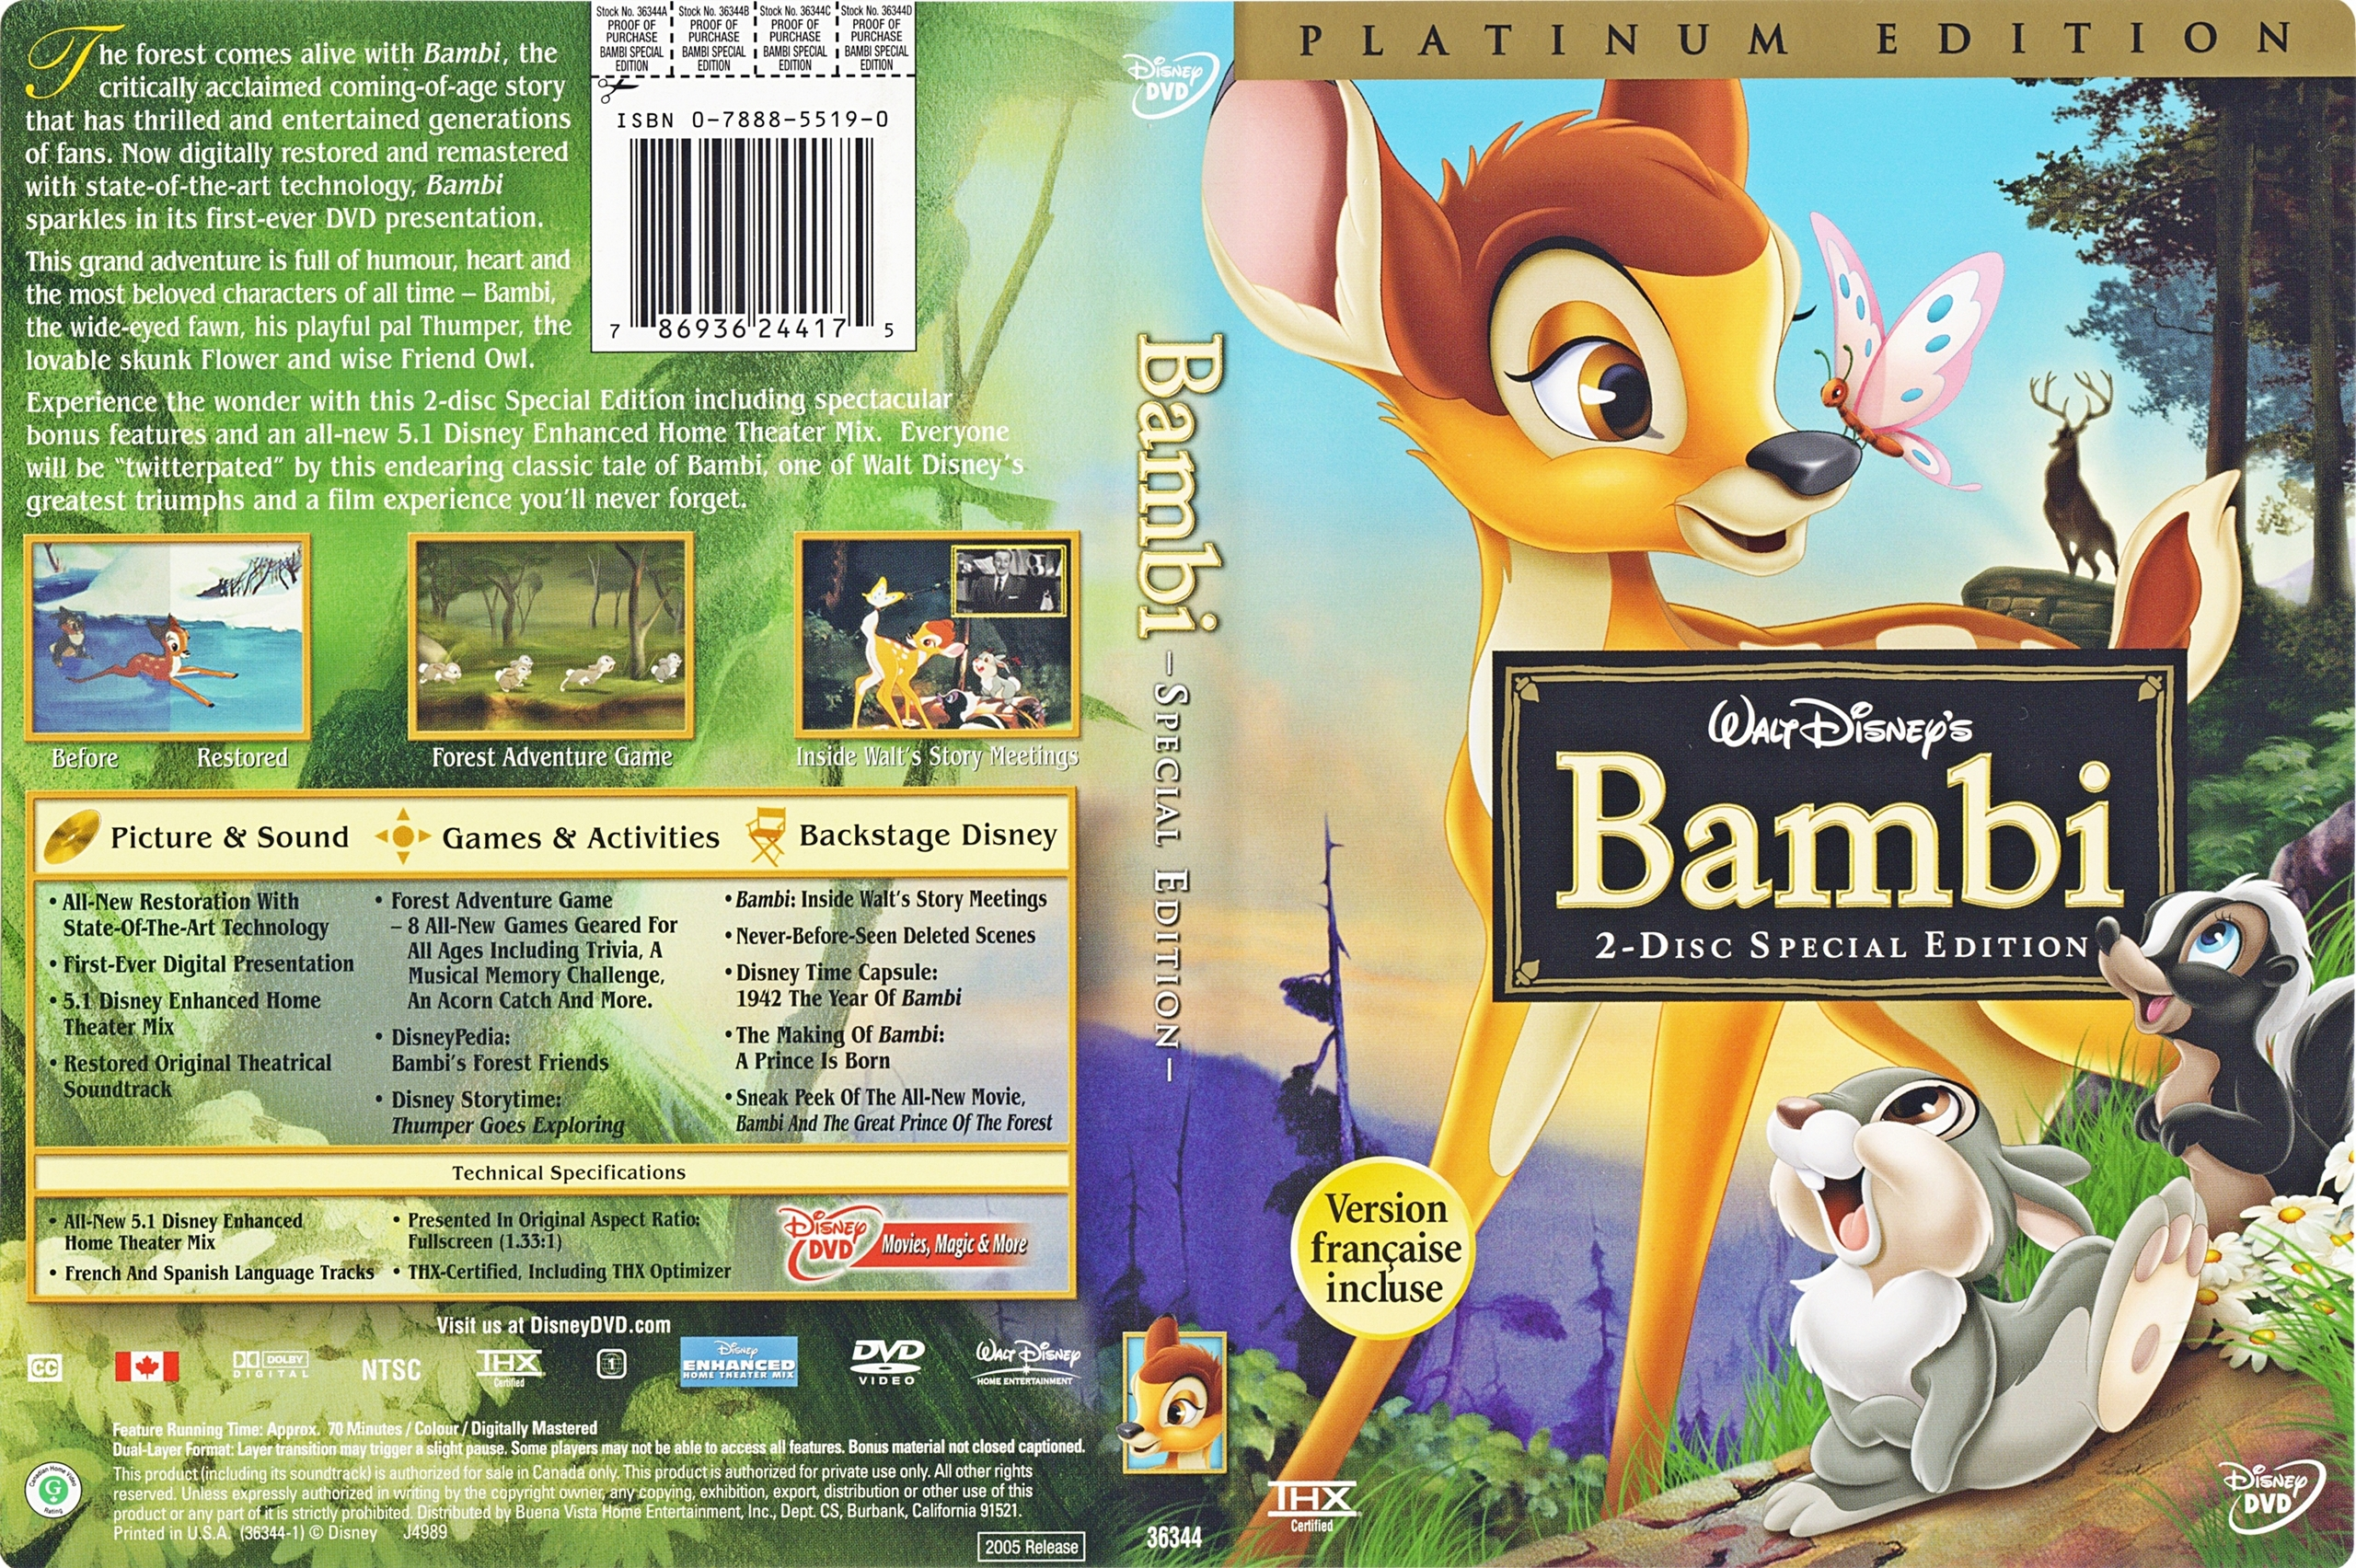 Walt Disney DVD Covers - Bambi: 2 Disc Platinum Edition